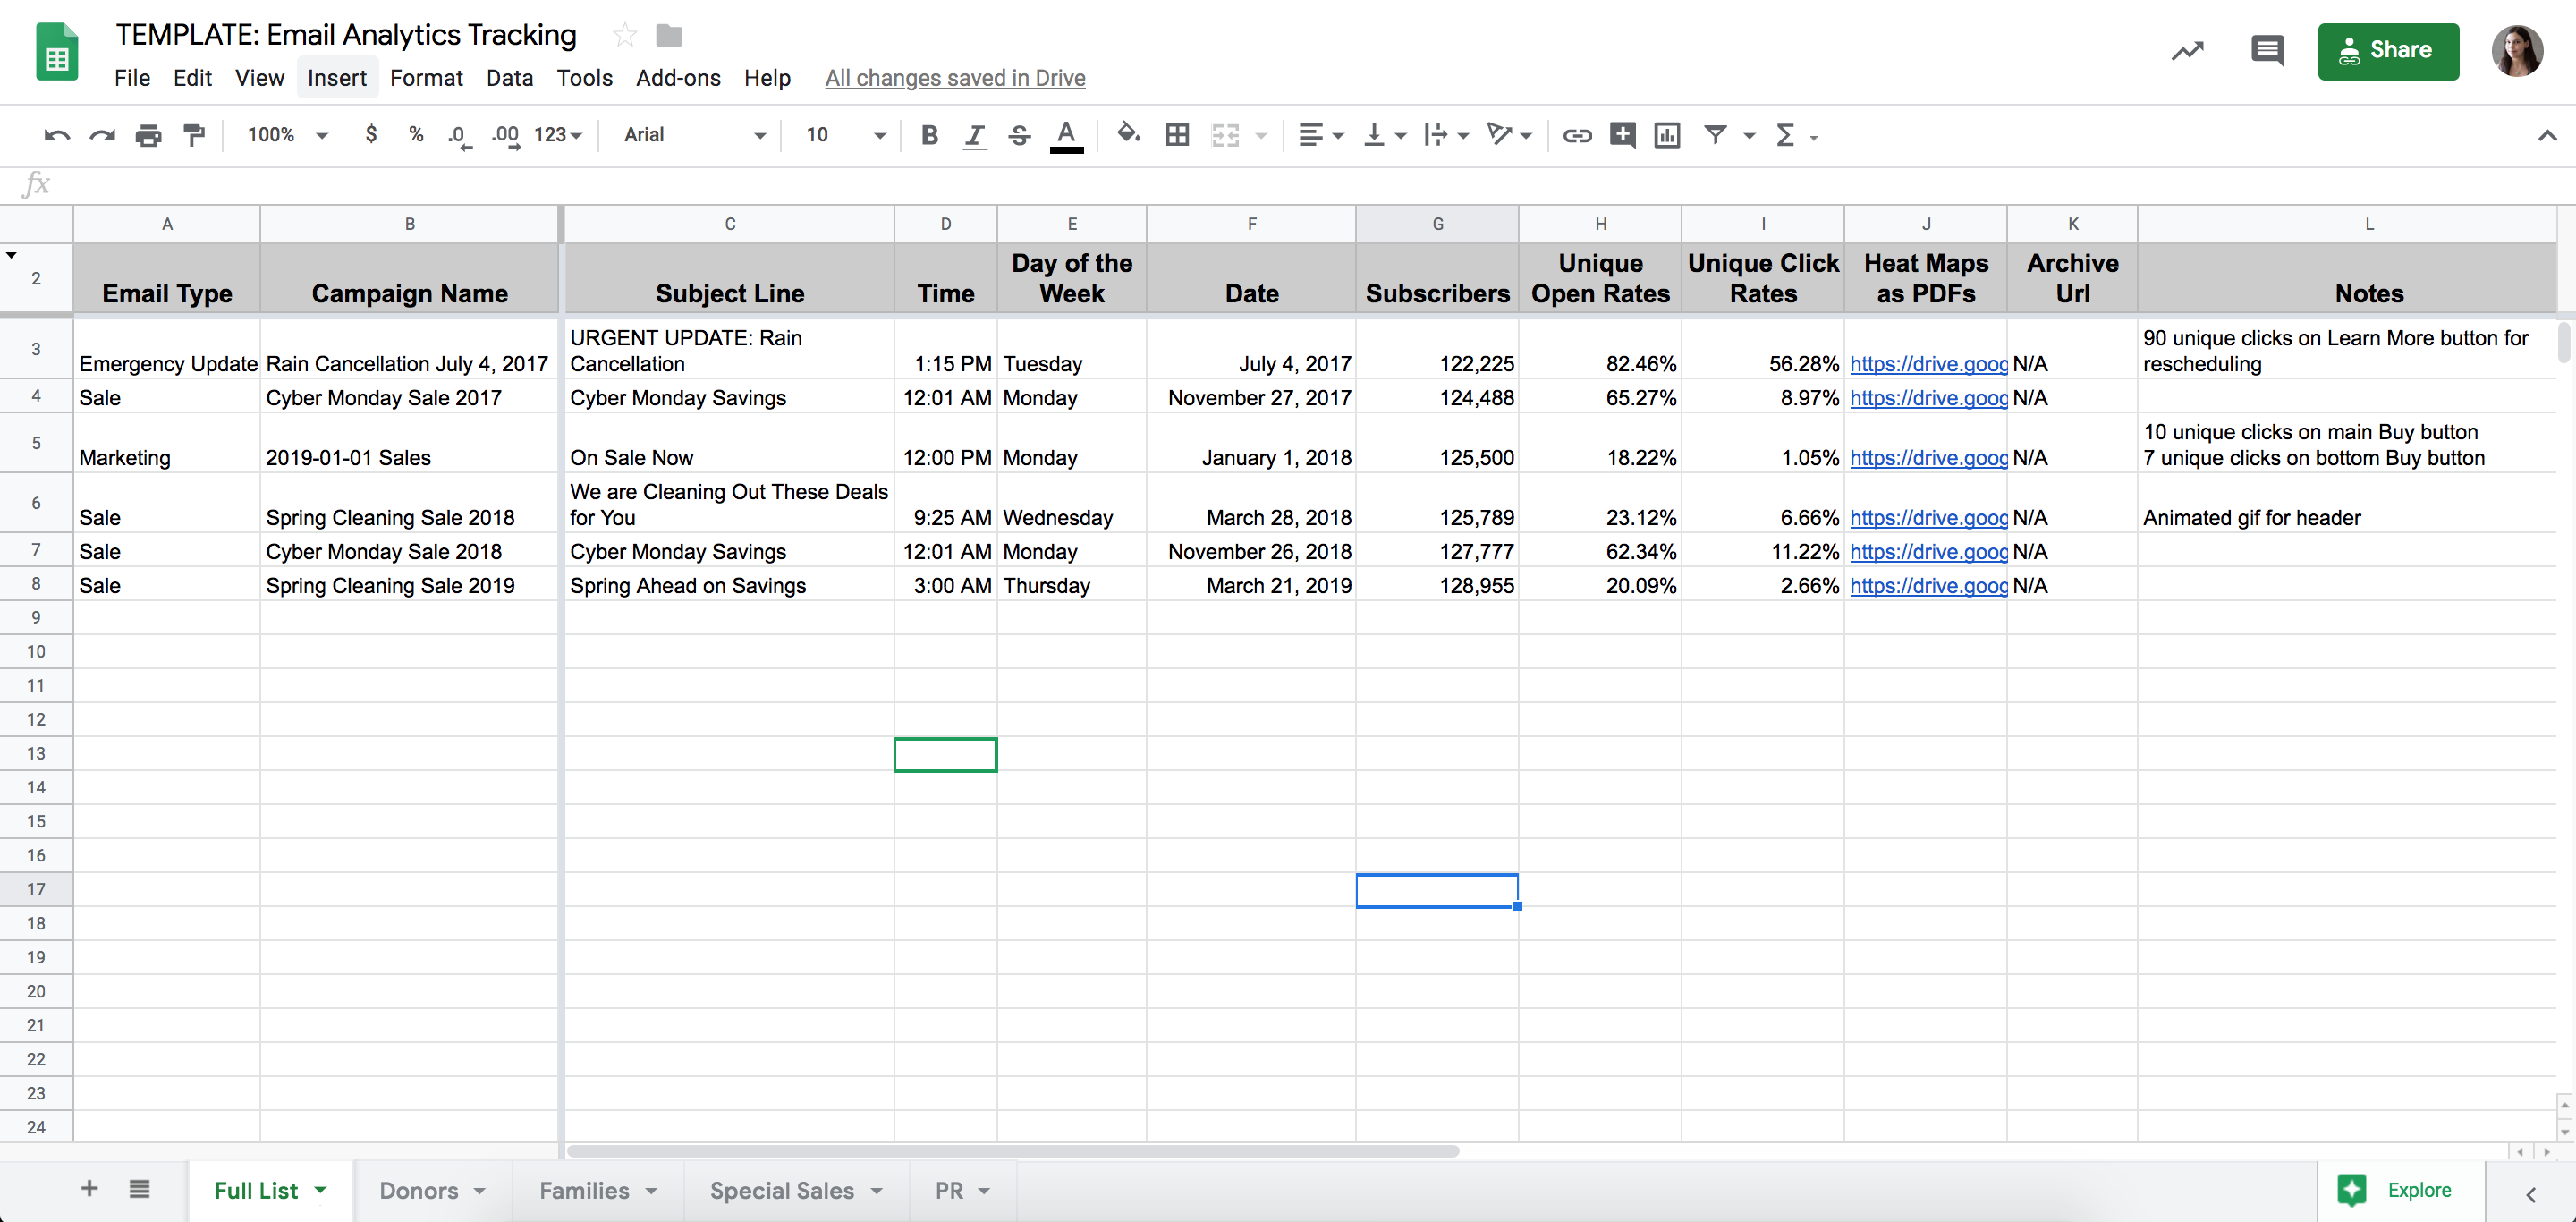 spreadsheet of email data like subjectlines, open rates, click rates, and links